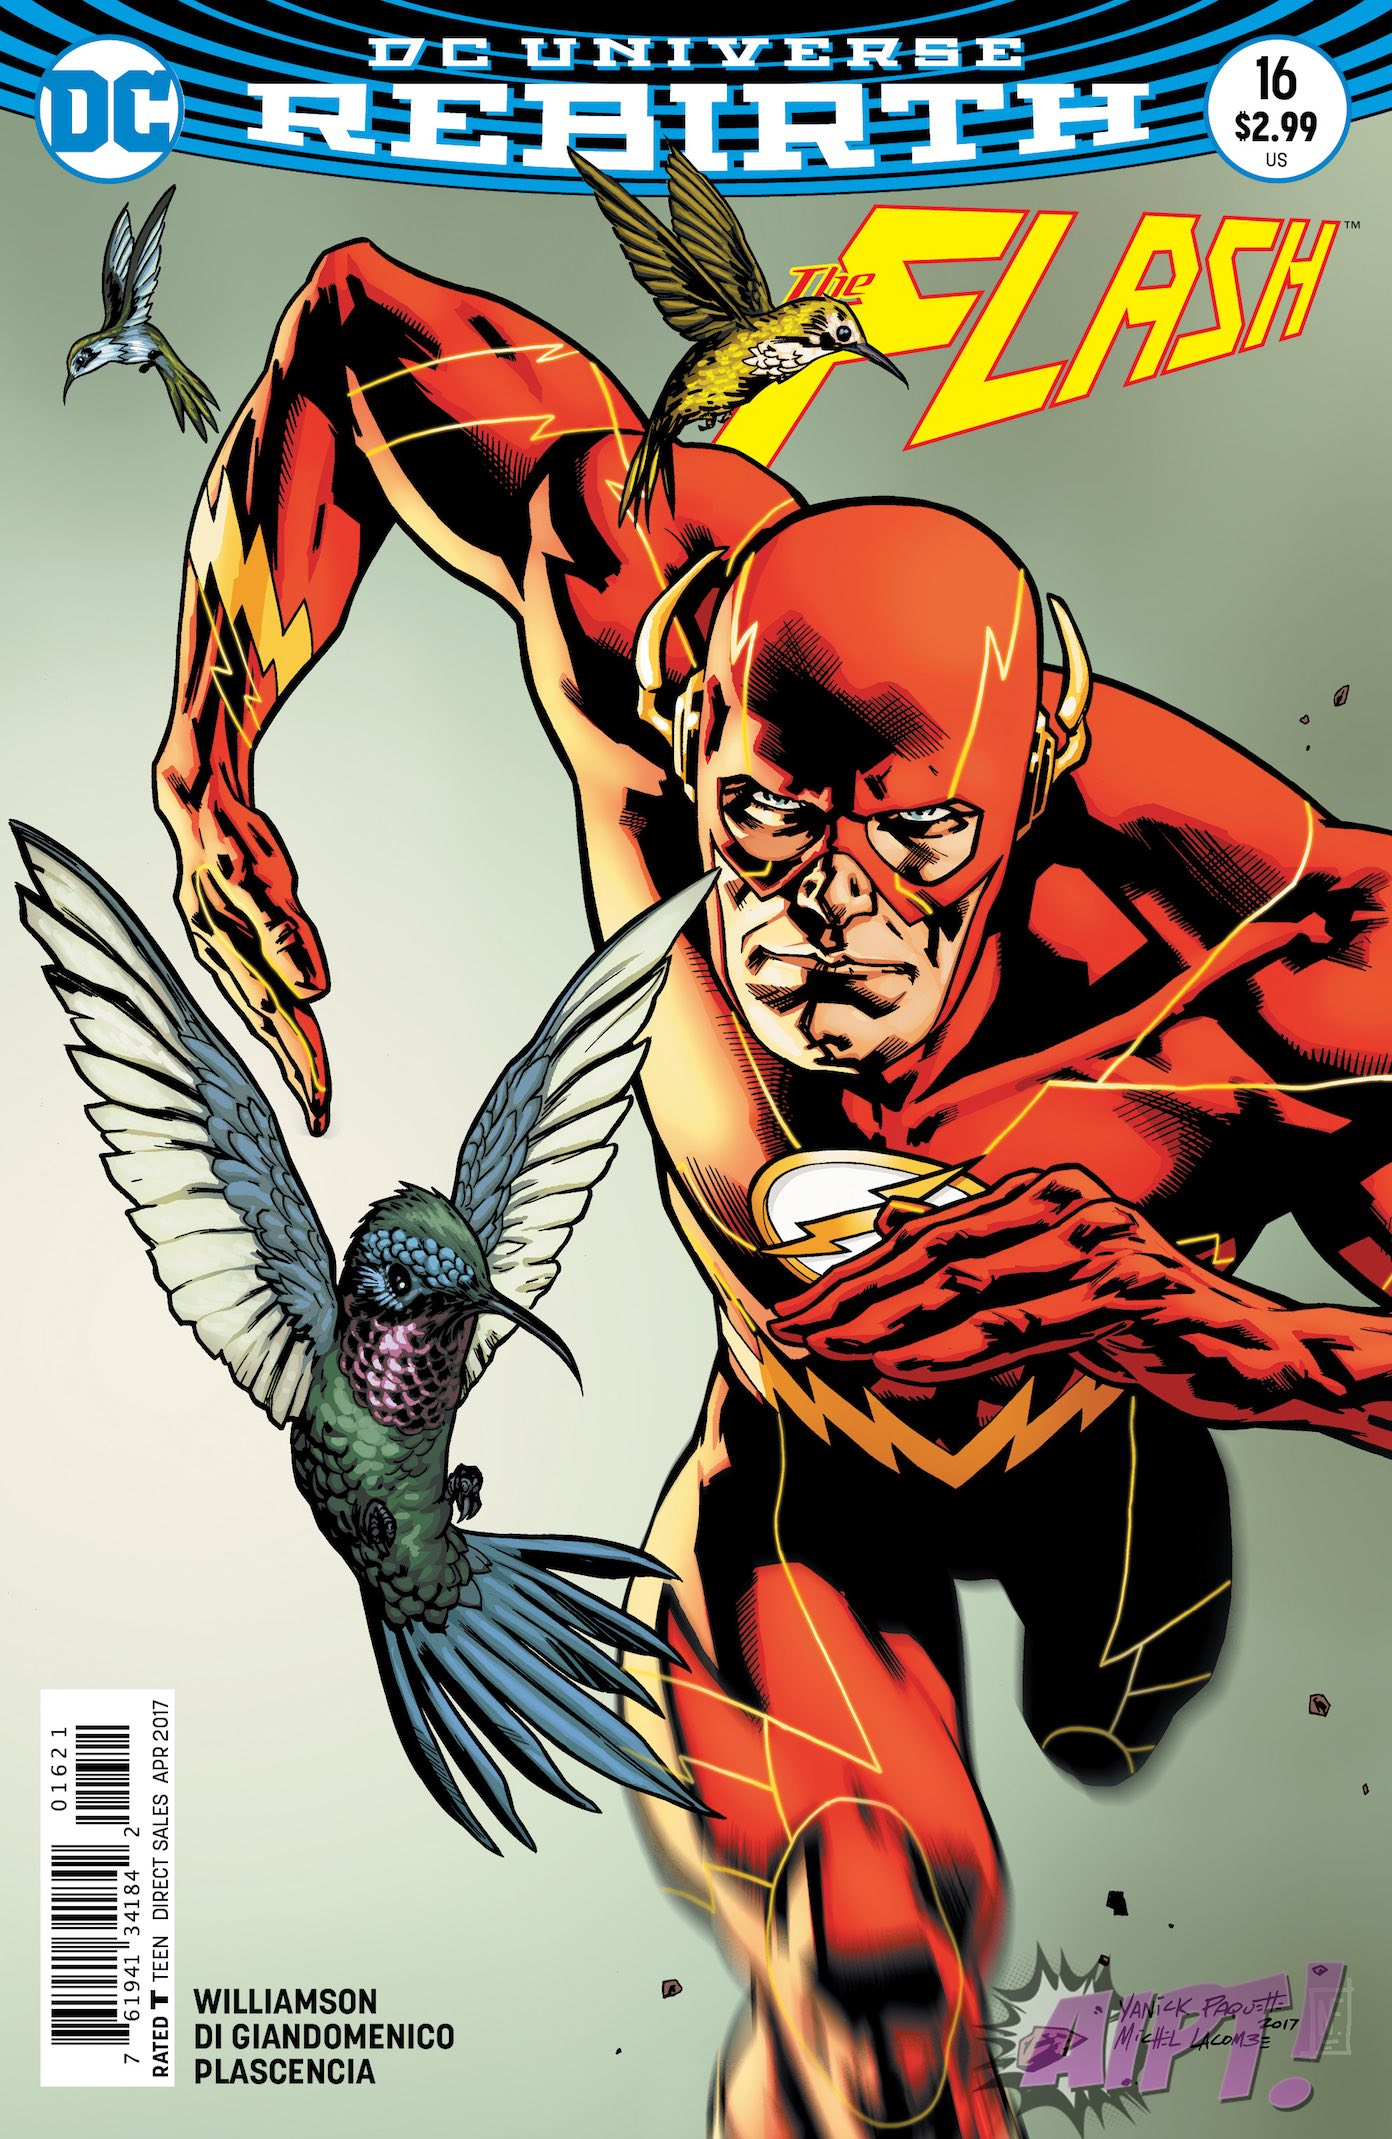 [EXCLUSIVE] DC Preview: Flash #16